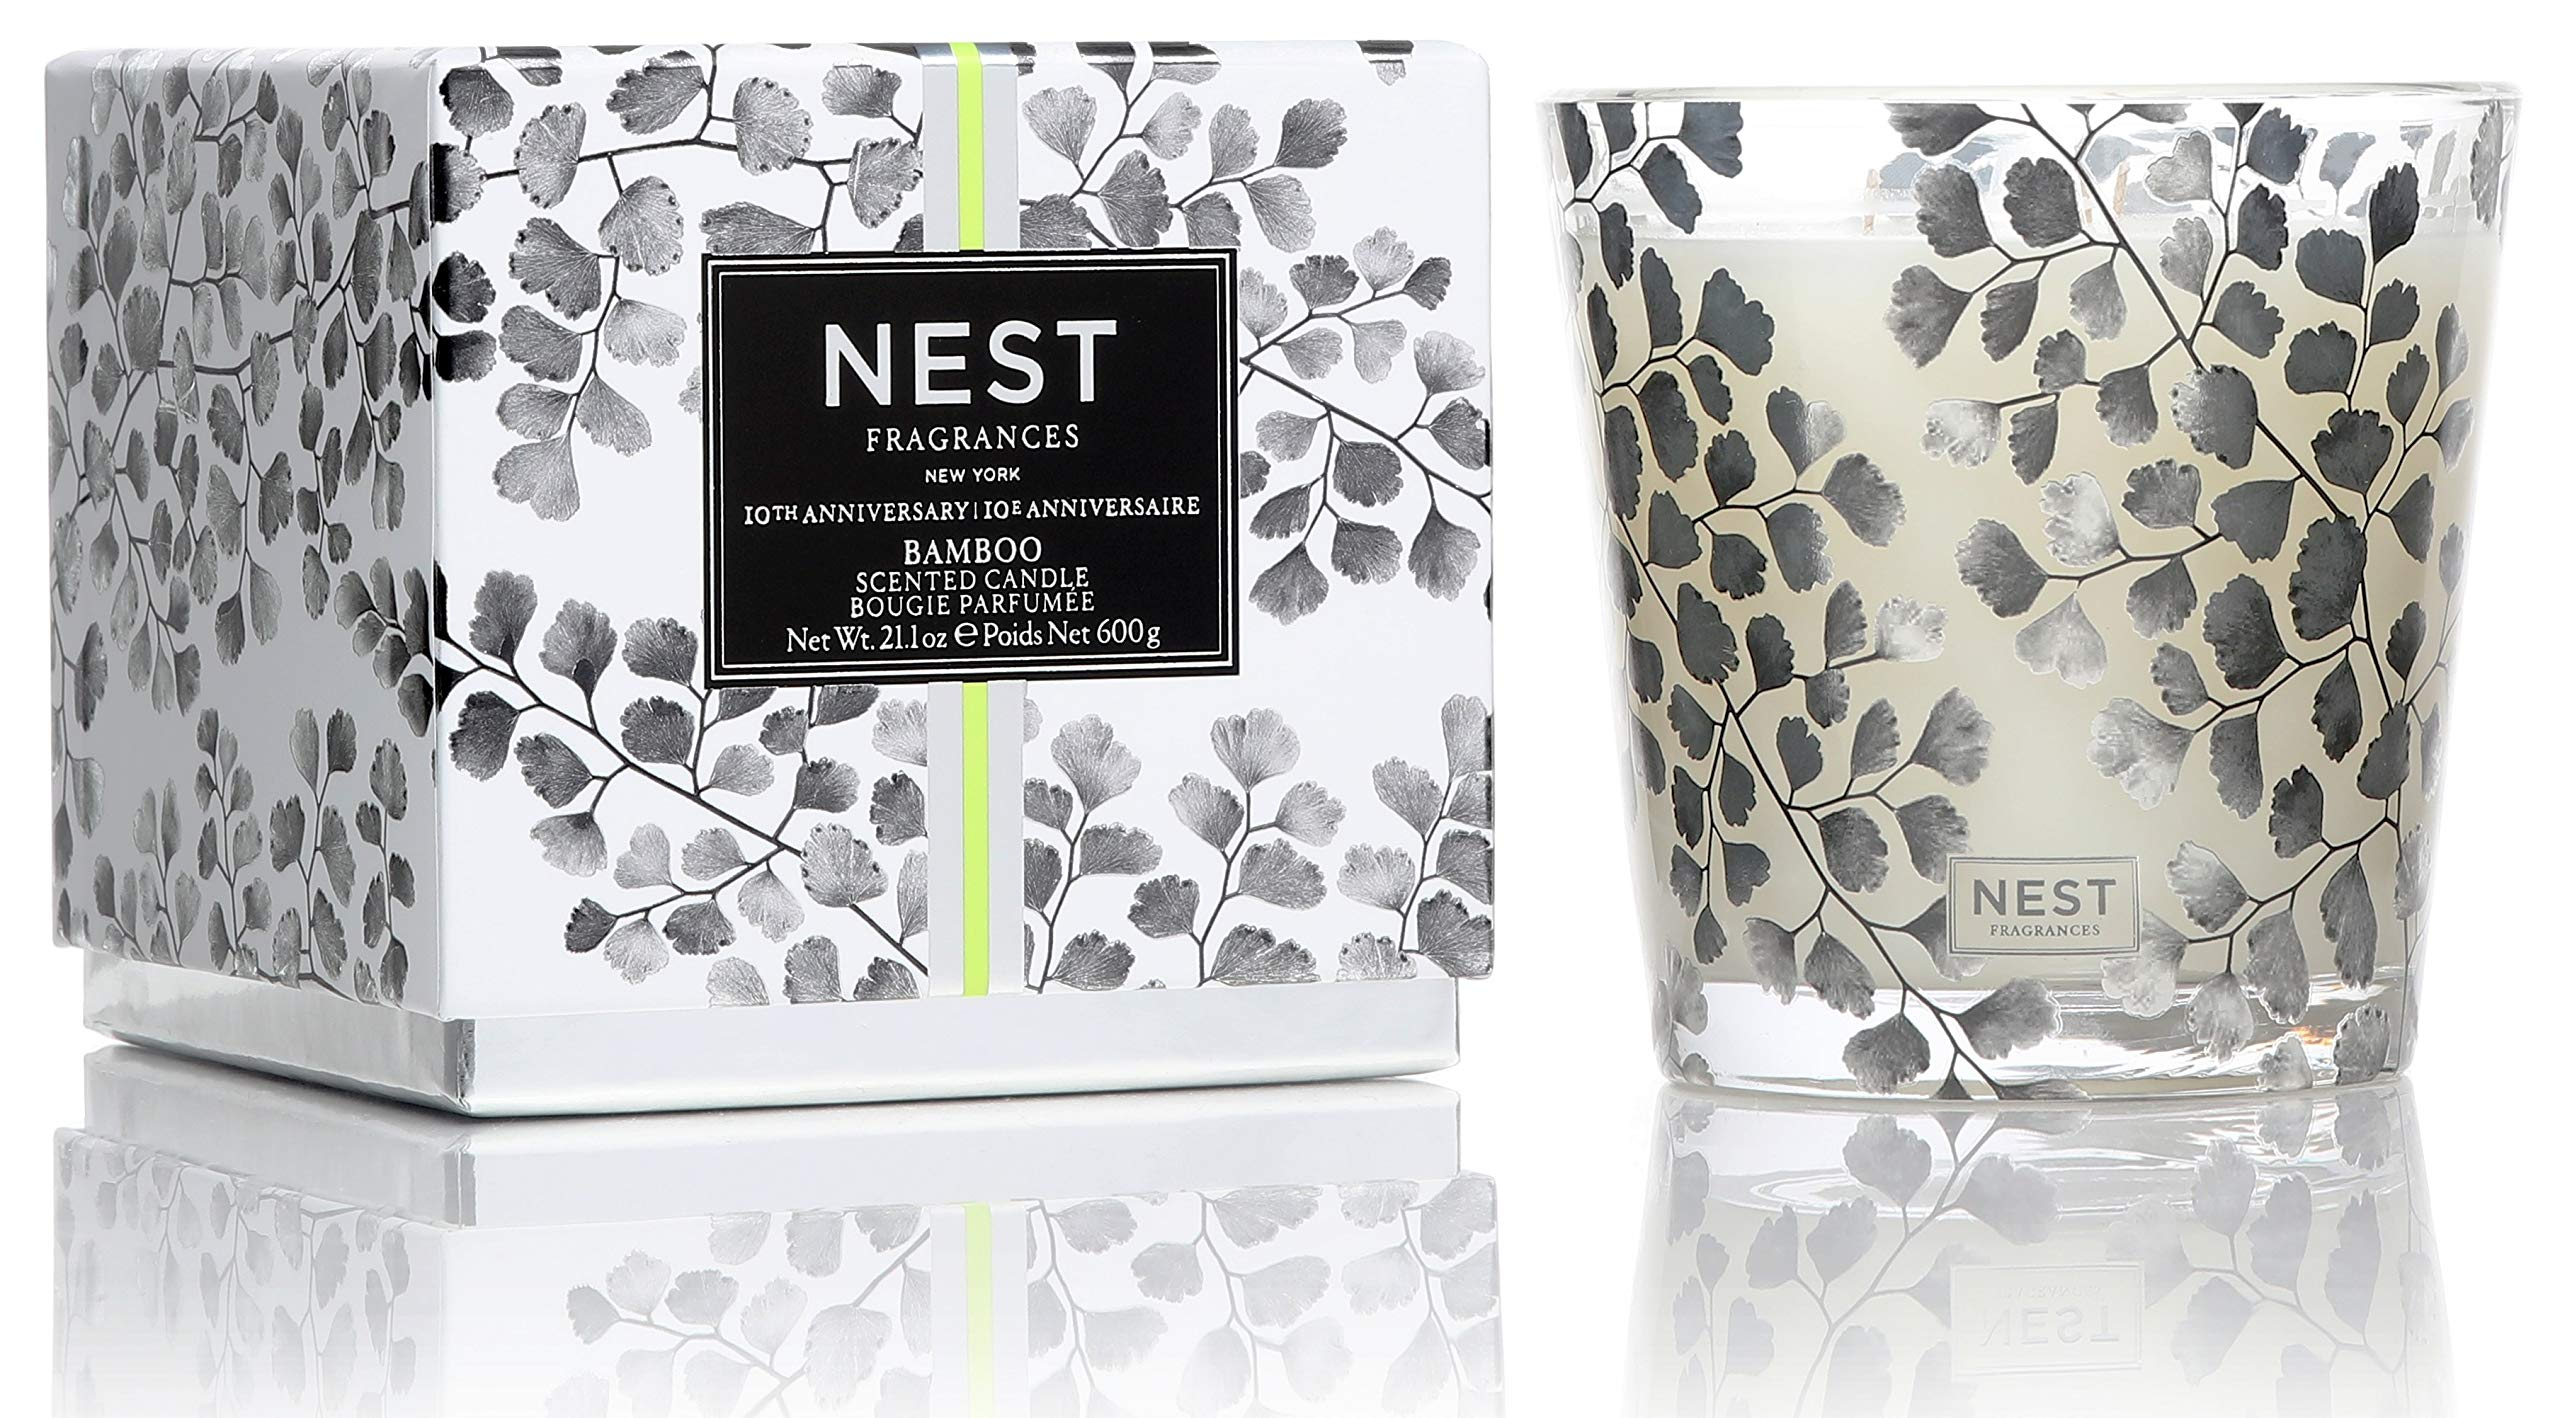 NEST Fragrances Bamboo 3-Wick Candle